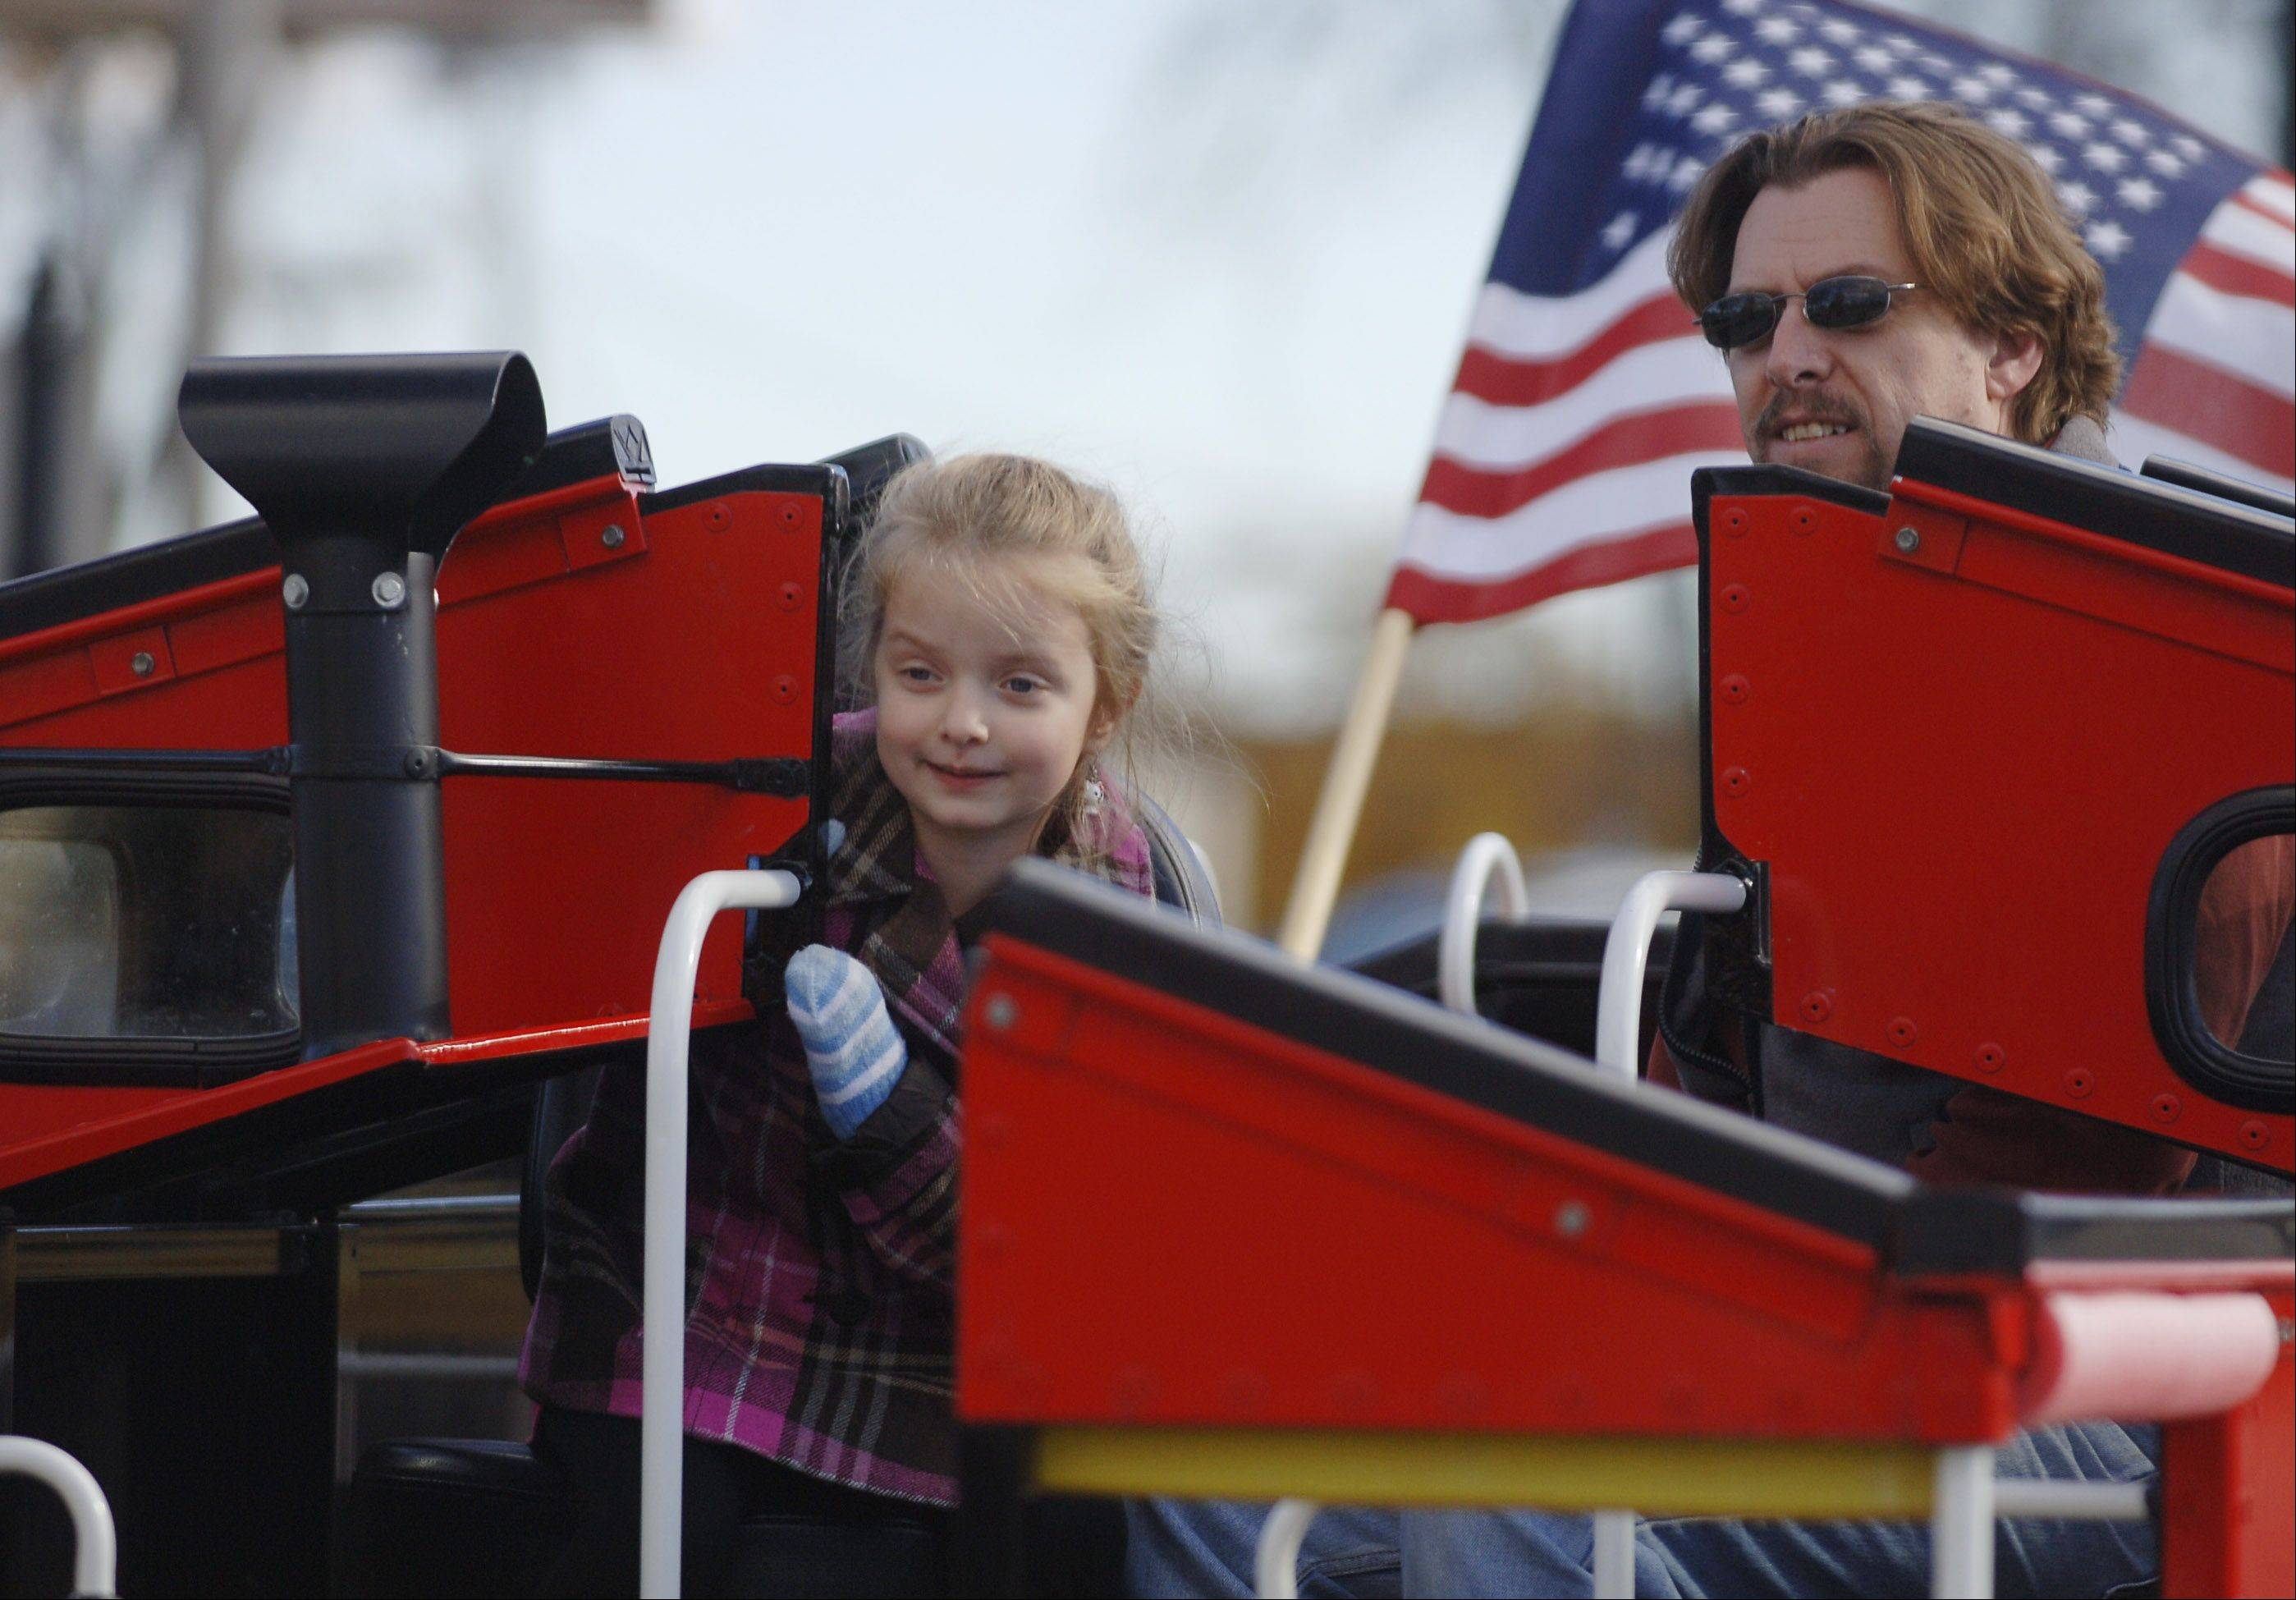 Josephine Tilford, 5 of Round Lake, climbs aboard the Canadian National�s Little Obie train with her dad, John Tilford, during the Mundelein Fall Harvest Celebration Friday. The fest was held to officially close the Mundelein Farmers Market for the season.